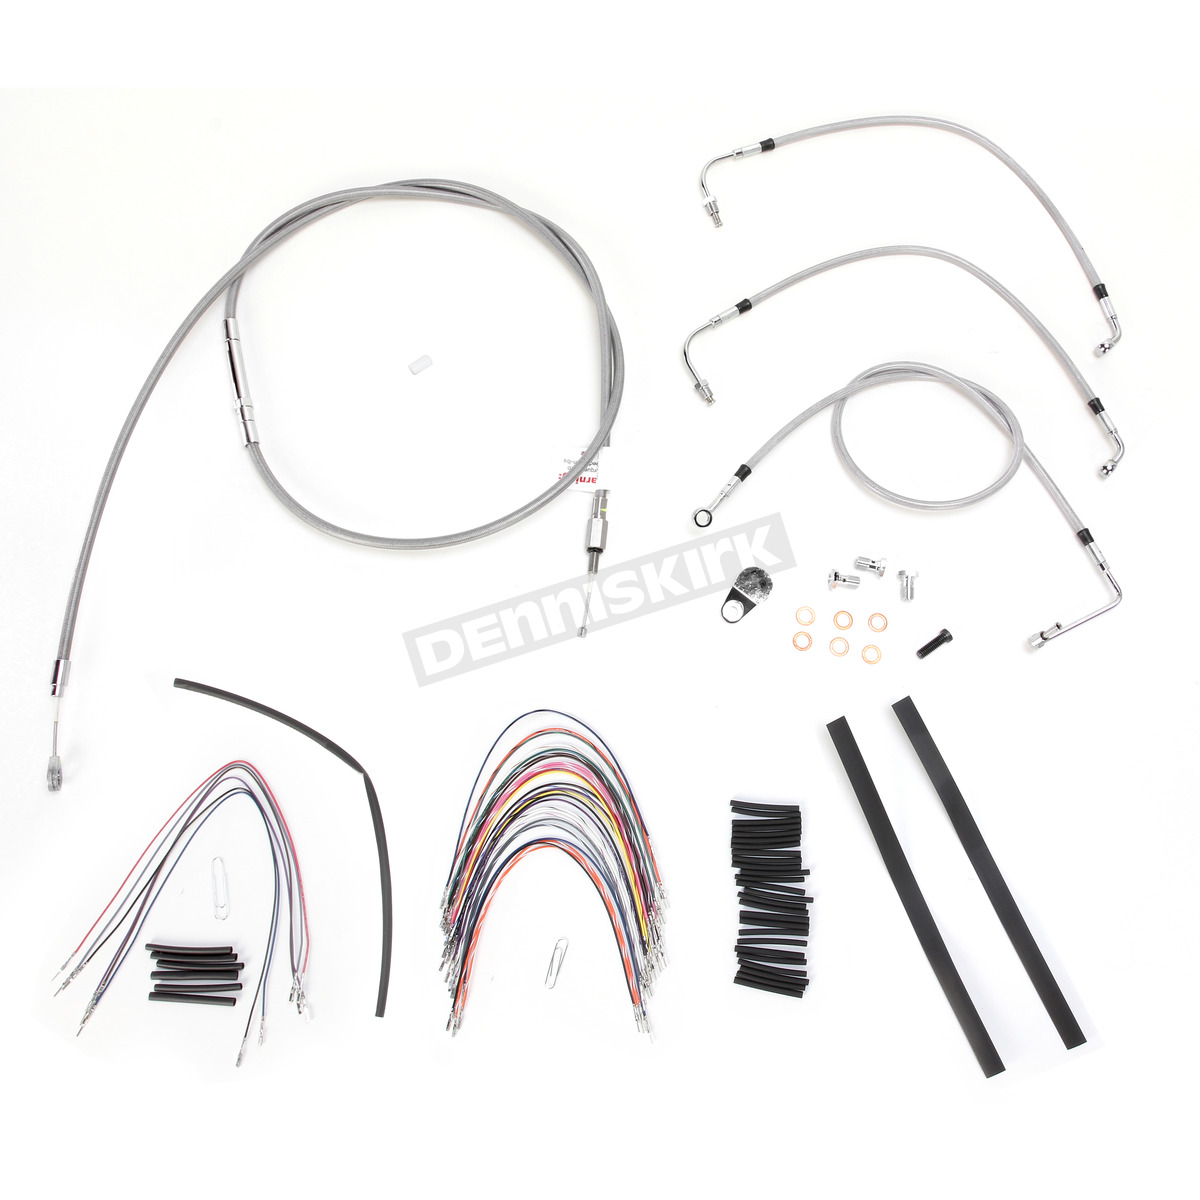 Braided Stainless Steel Cable/Line Kit - B30-1093